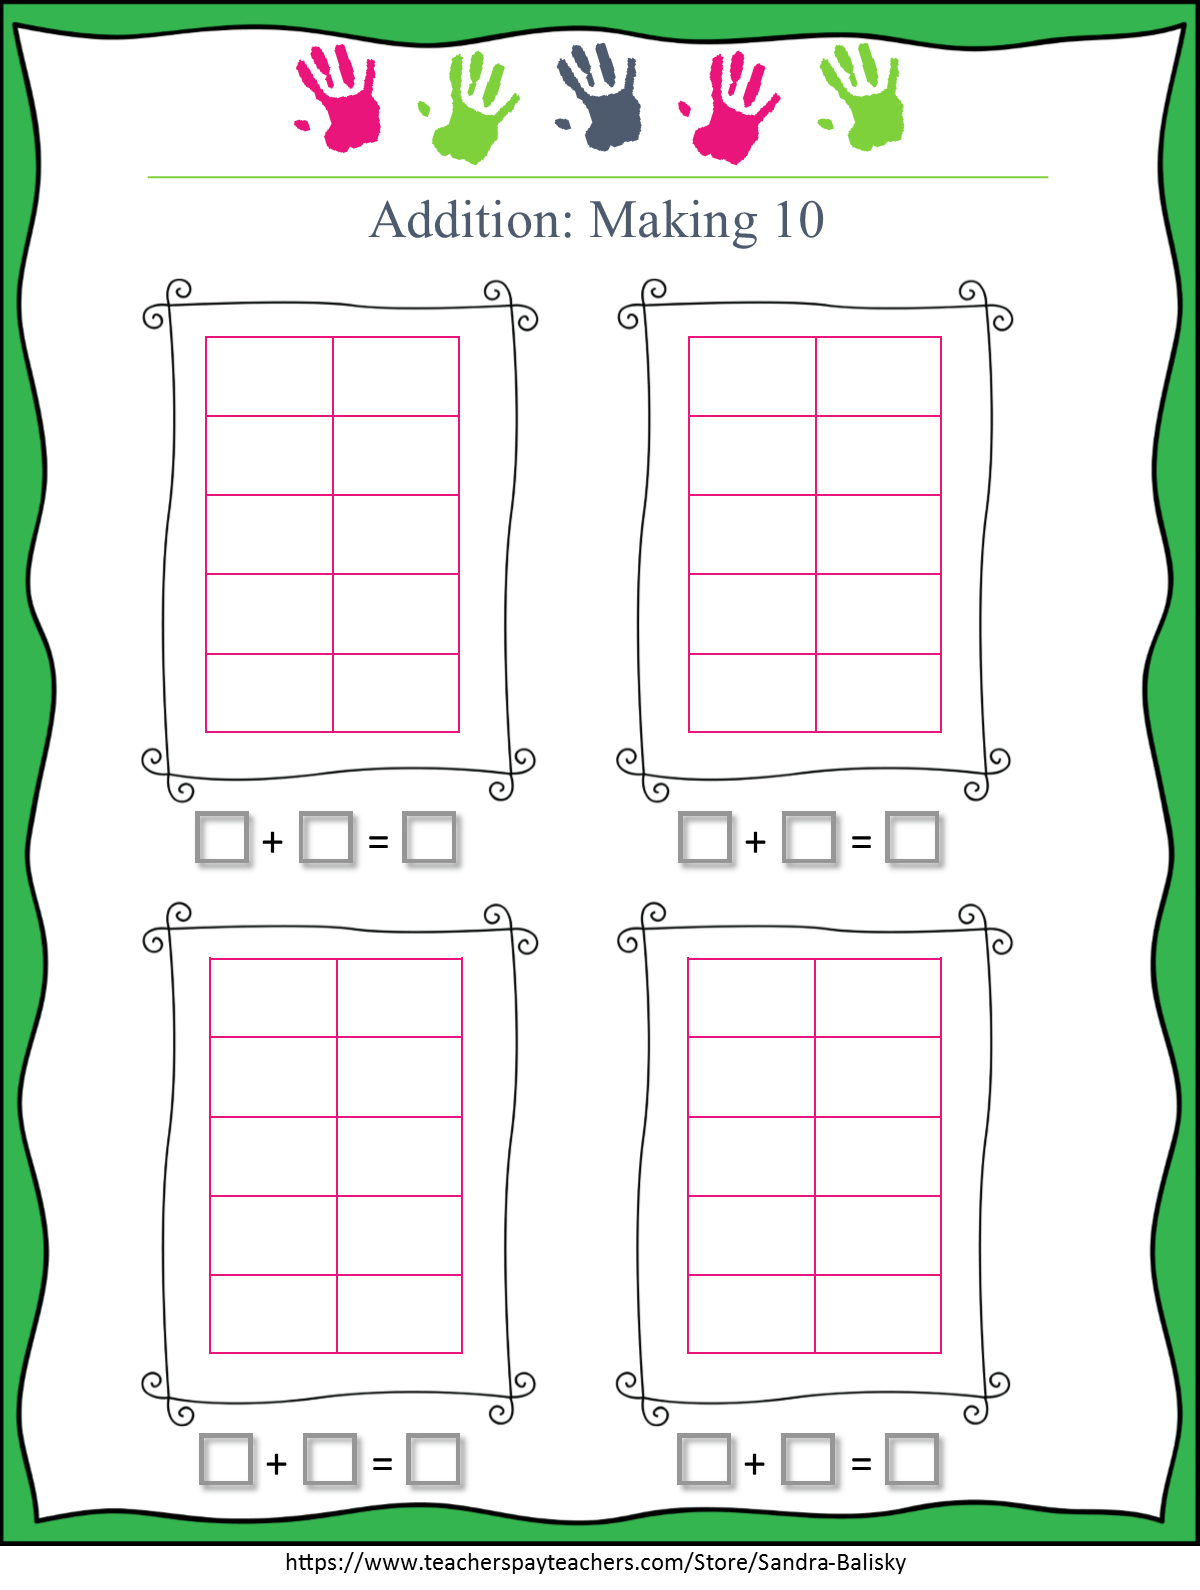 image relating to Making 10 Games Printable named Math Monday: 10 body math with seass ⋆ R.E.A.L.-World-wide